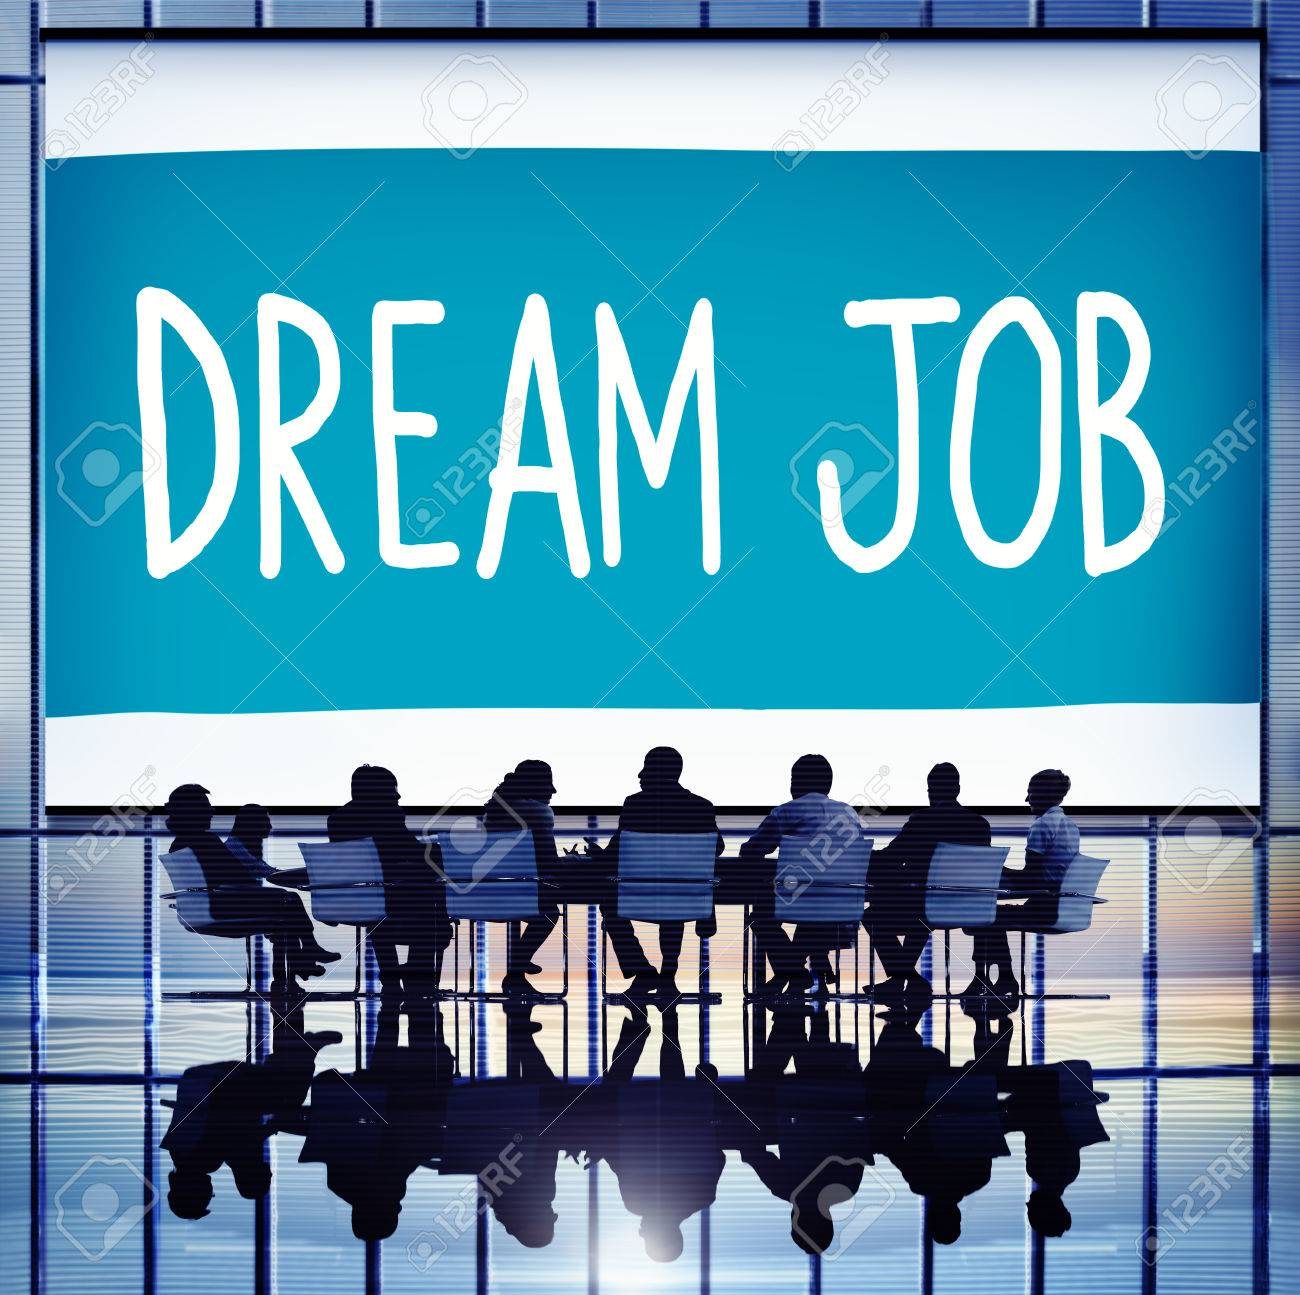 dream job occupation career aspiration concept stock photo dream job occupation career aspiration concept stock photo 47090825